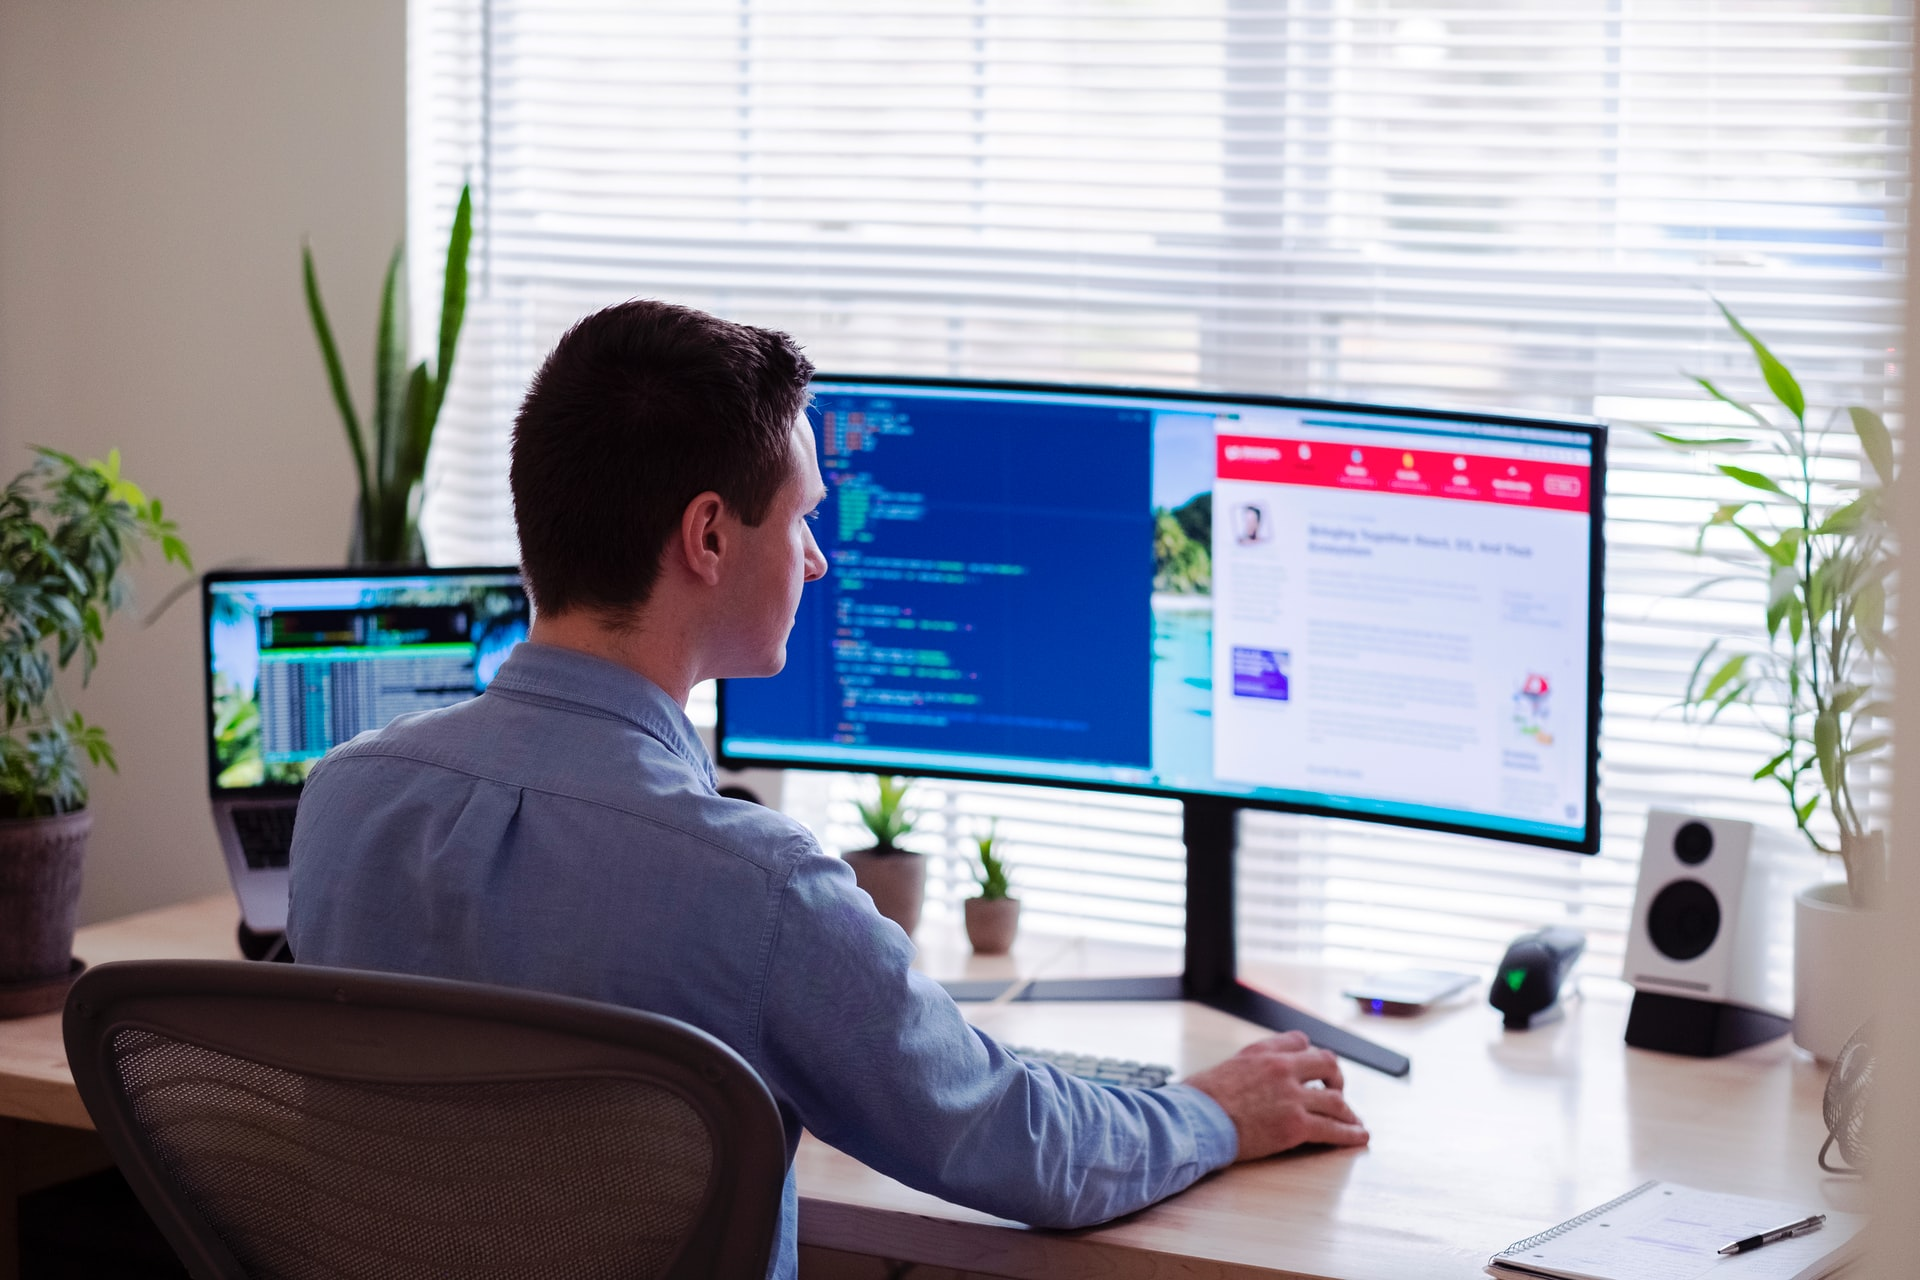 Man sitting at a desk with multiple monitors.